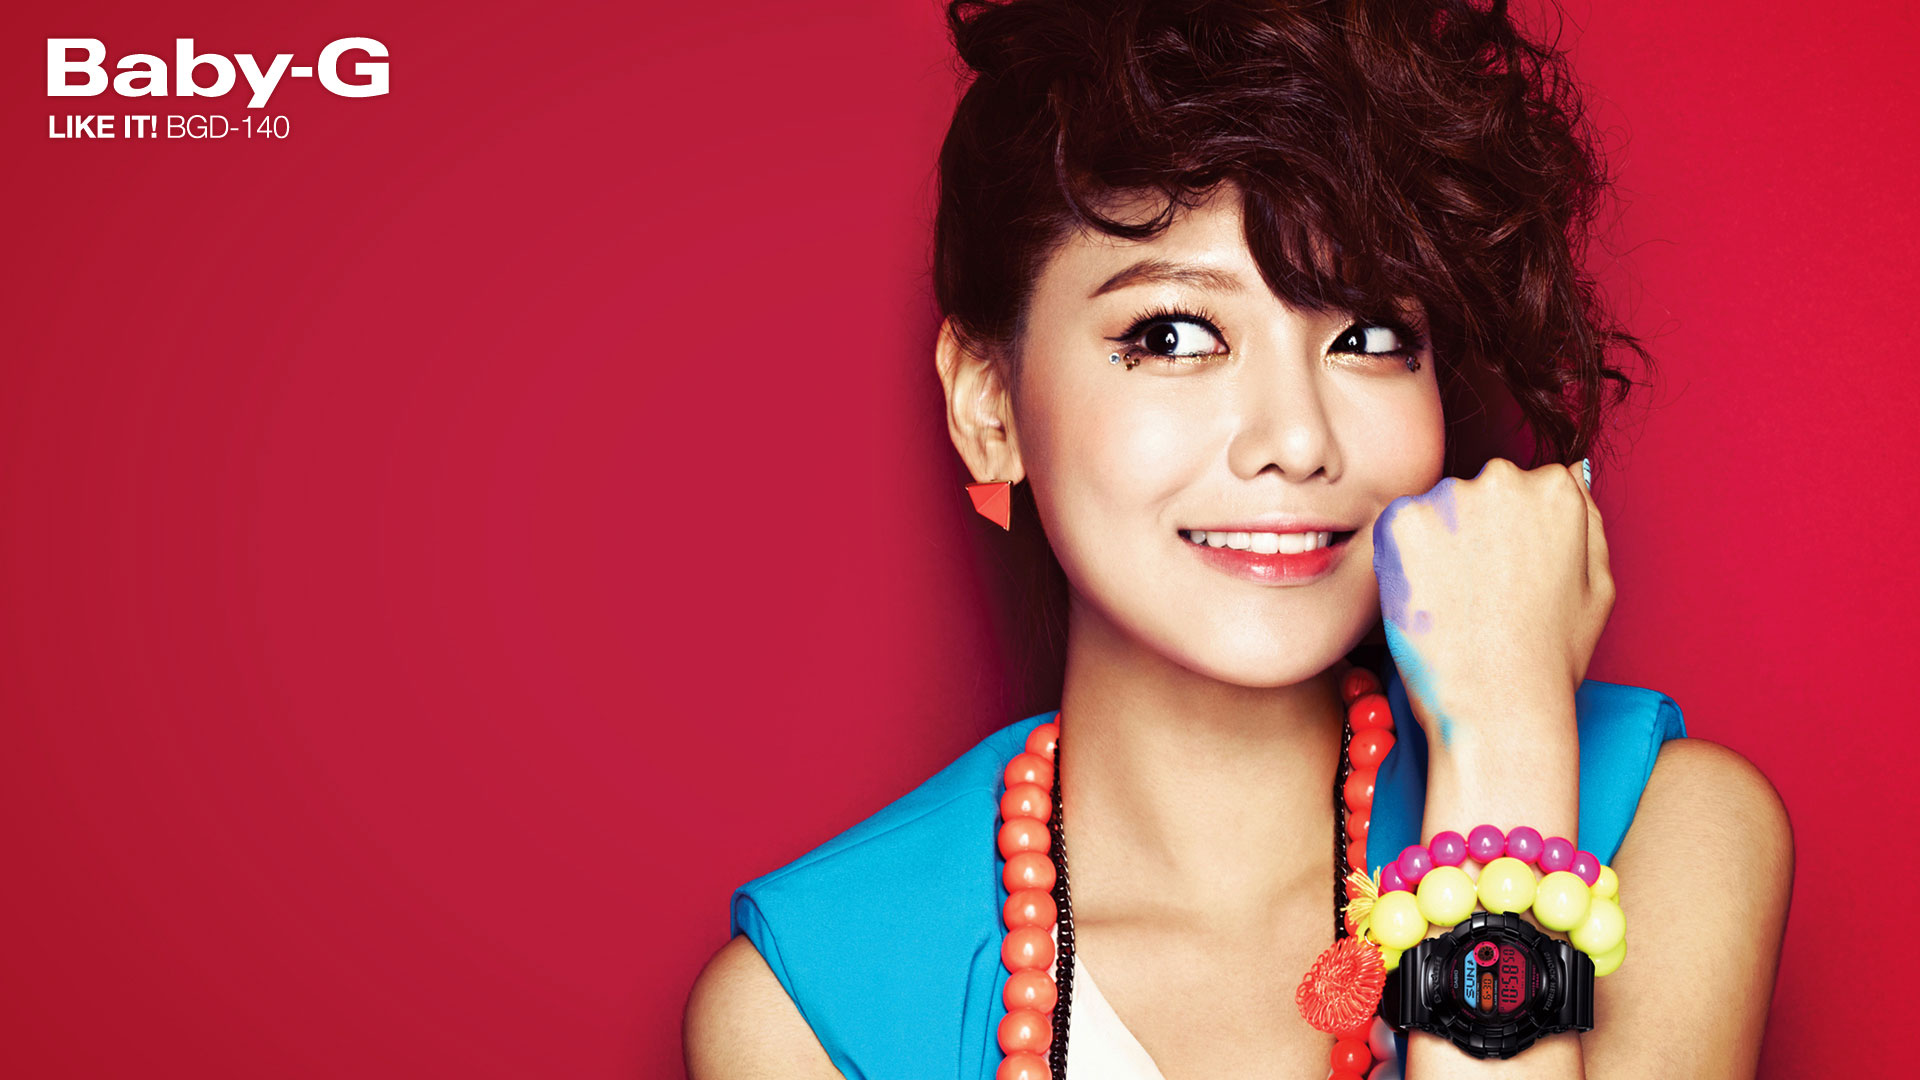 Snsd Sooyoung Casio Baby G wallpaper